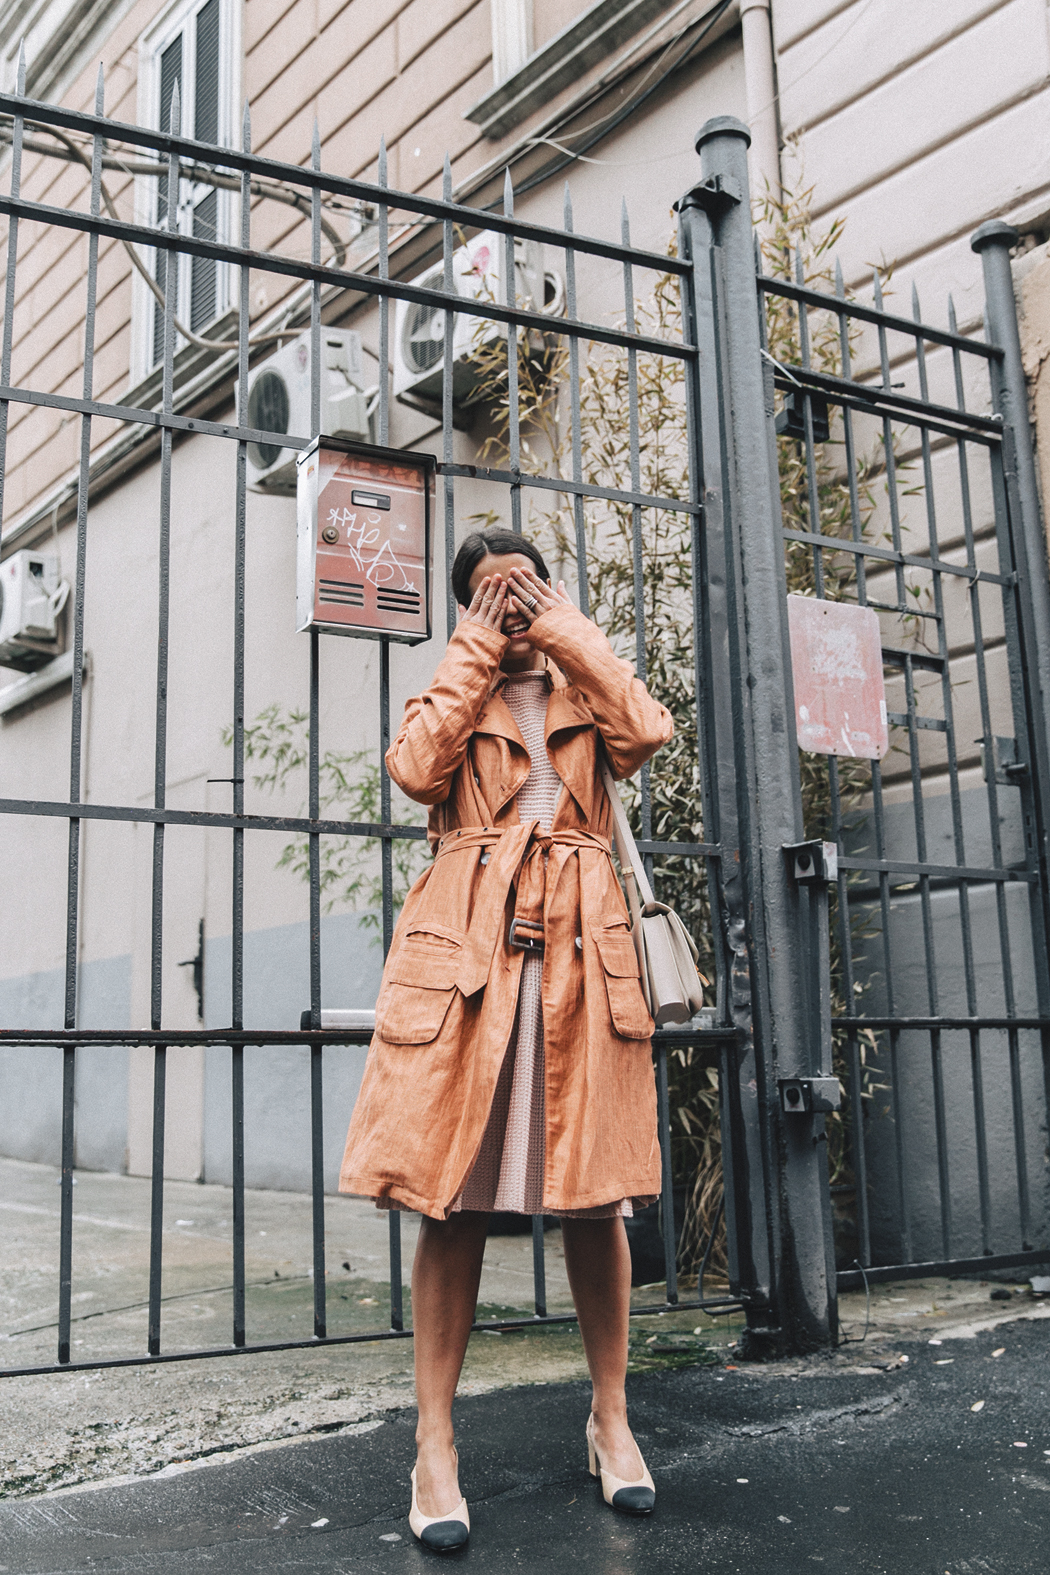 Armani-Trench_Coat-Pink_Dress-Chanel_Slingbacks-Celine_Box_Bag-Outfit-Milan_Fashion_Week-Street_Style-23